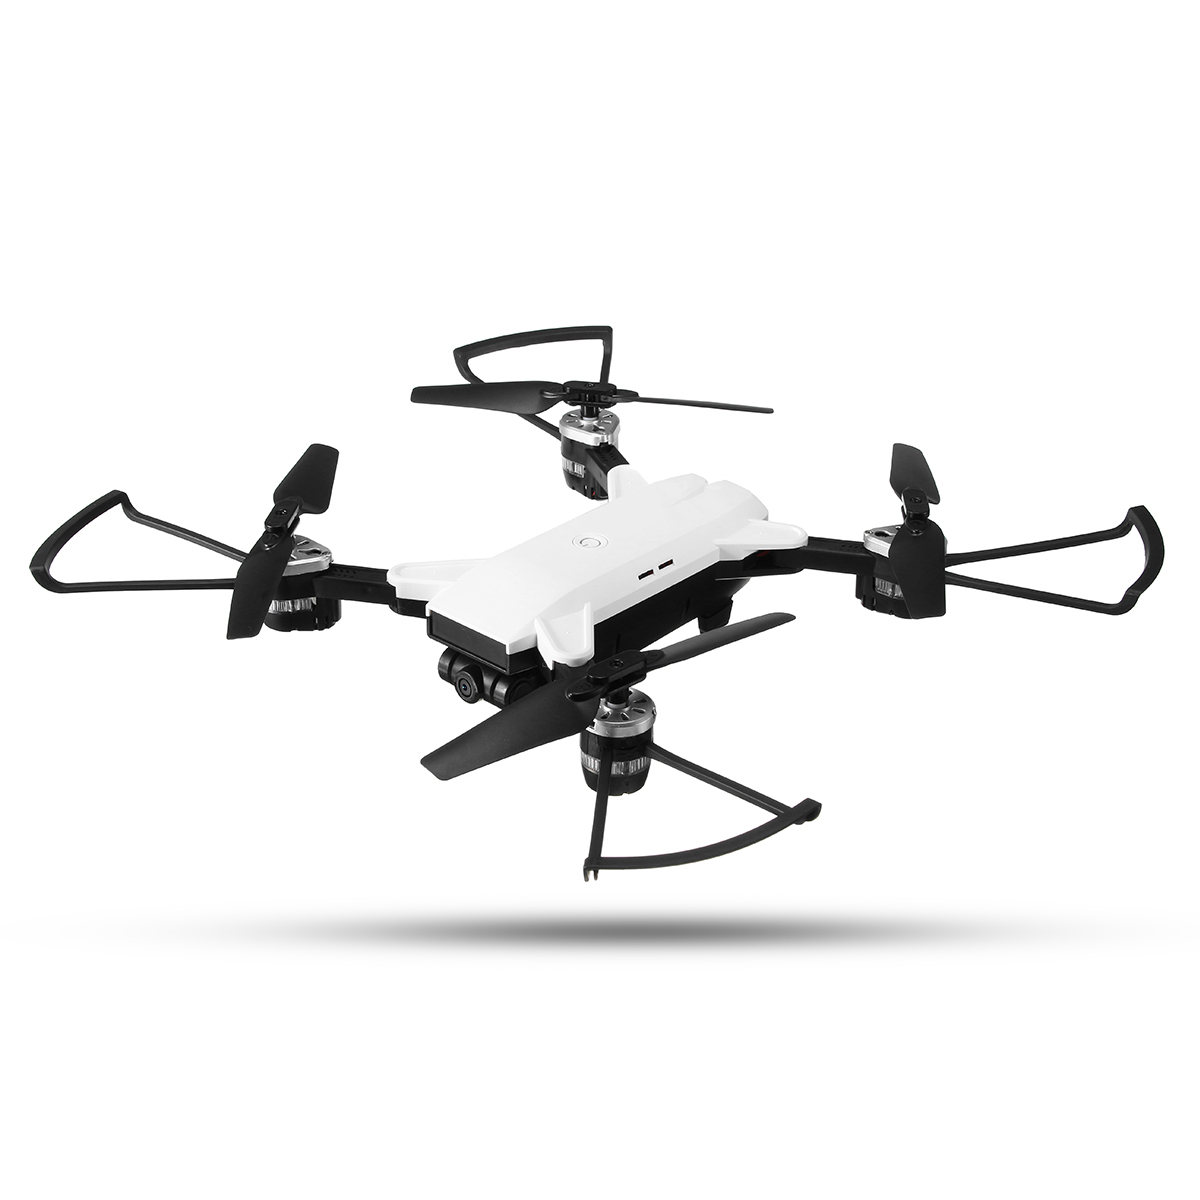 Smart Remote Control Kit HW Mini Foldable RC Helicopter Selfie Drone Wifi FPV 0.3MP  Altitude With LED Light Headless selfie drone jxd 523w jxd 523 tracker foldable mini rc drone with wifi fpv camera altitude hold headless mode rc helicopter